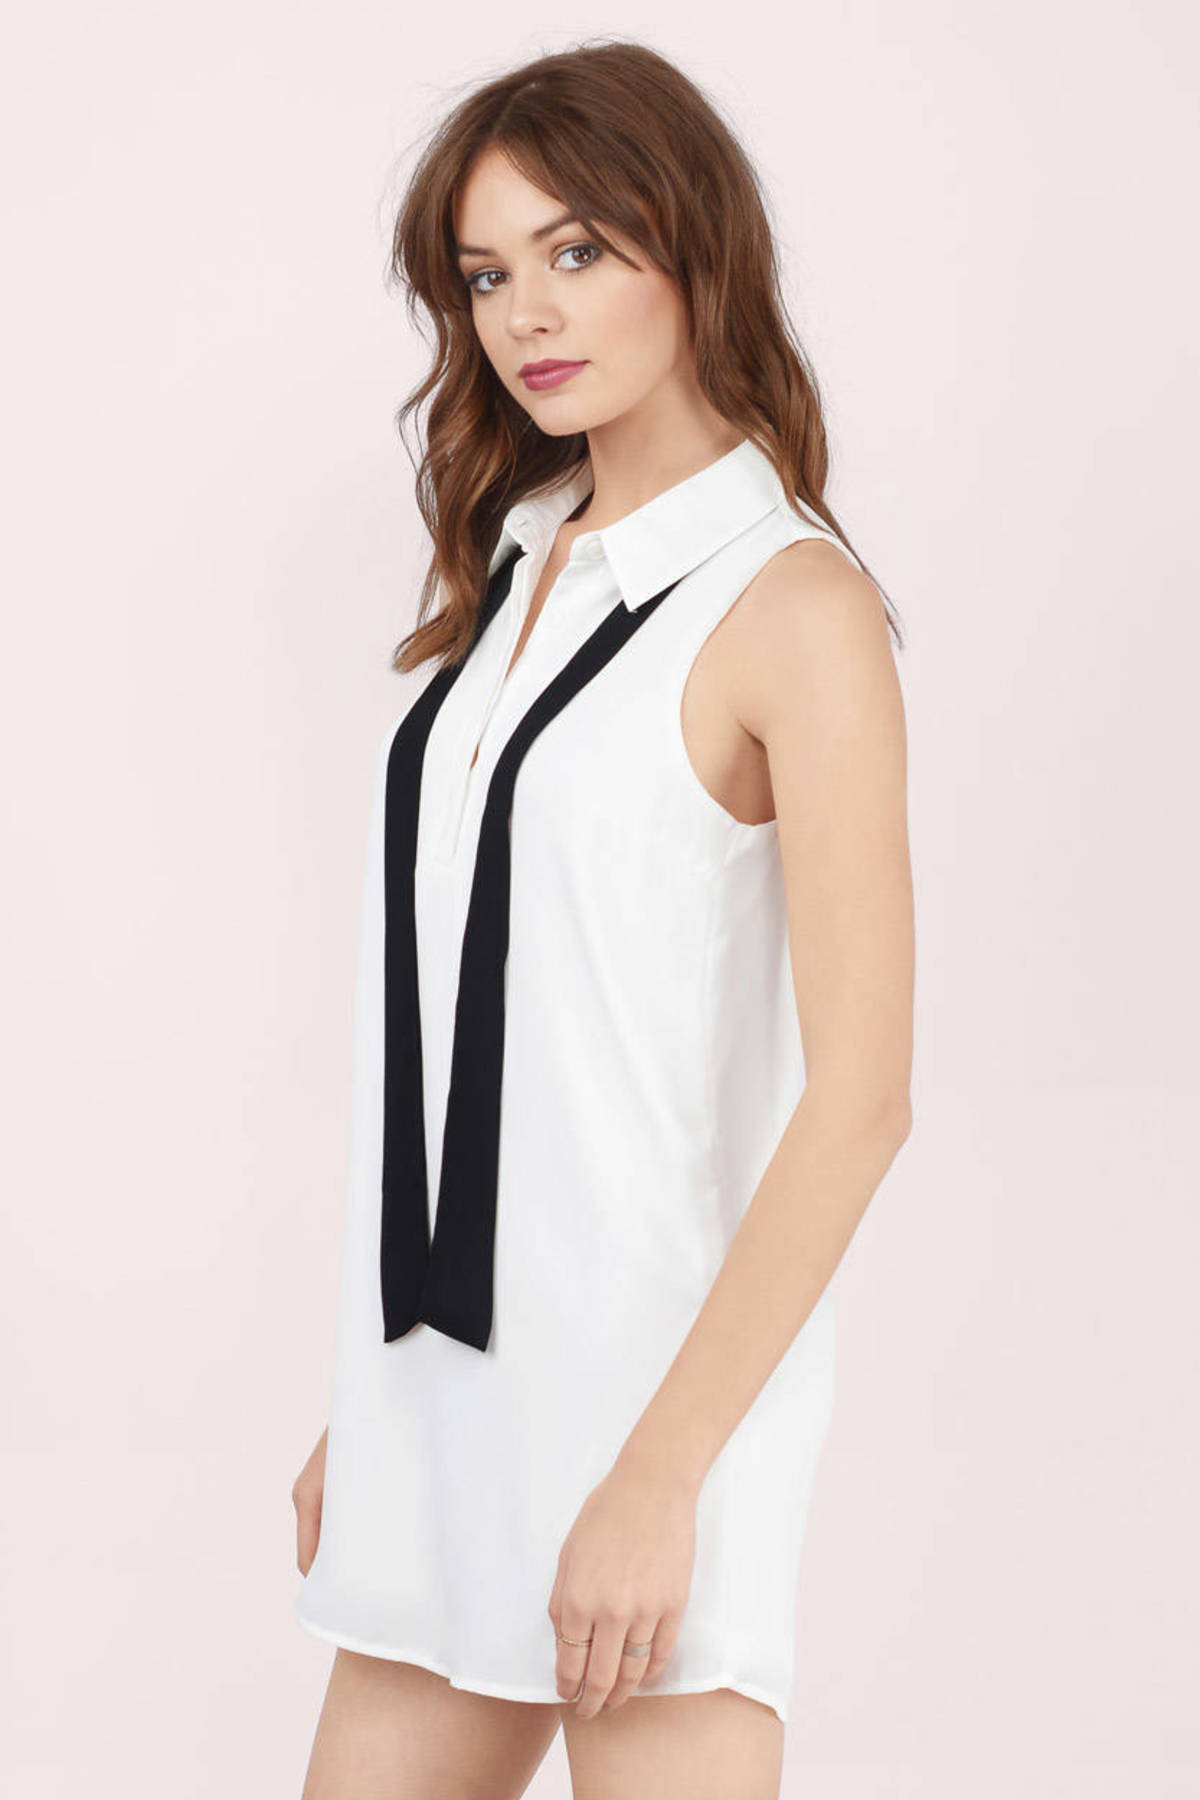 Black and white formal cocktail dresses